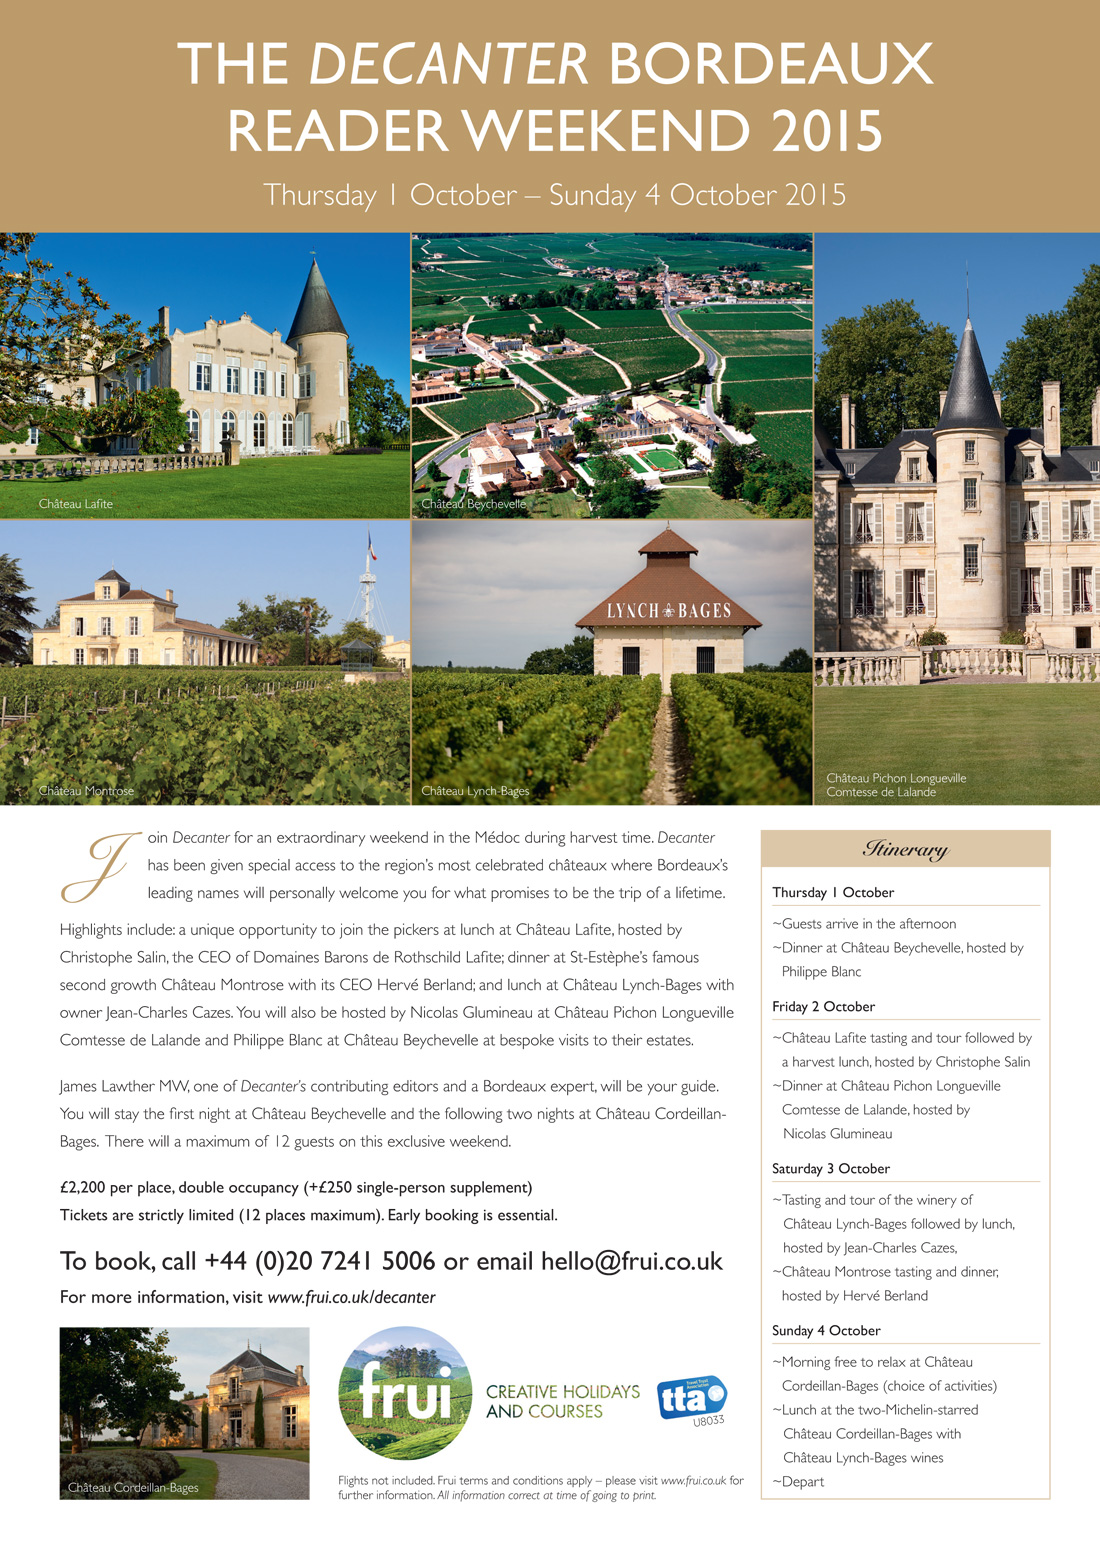 The Decanter Bordeaux Reader Weekend 2015